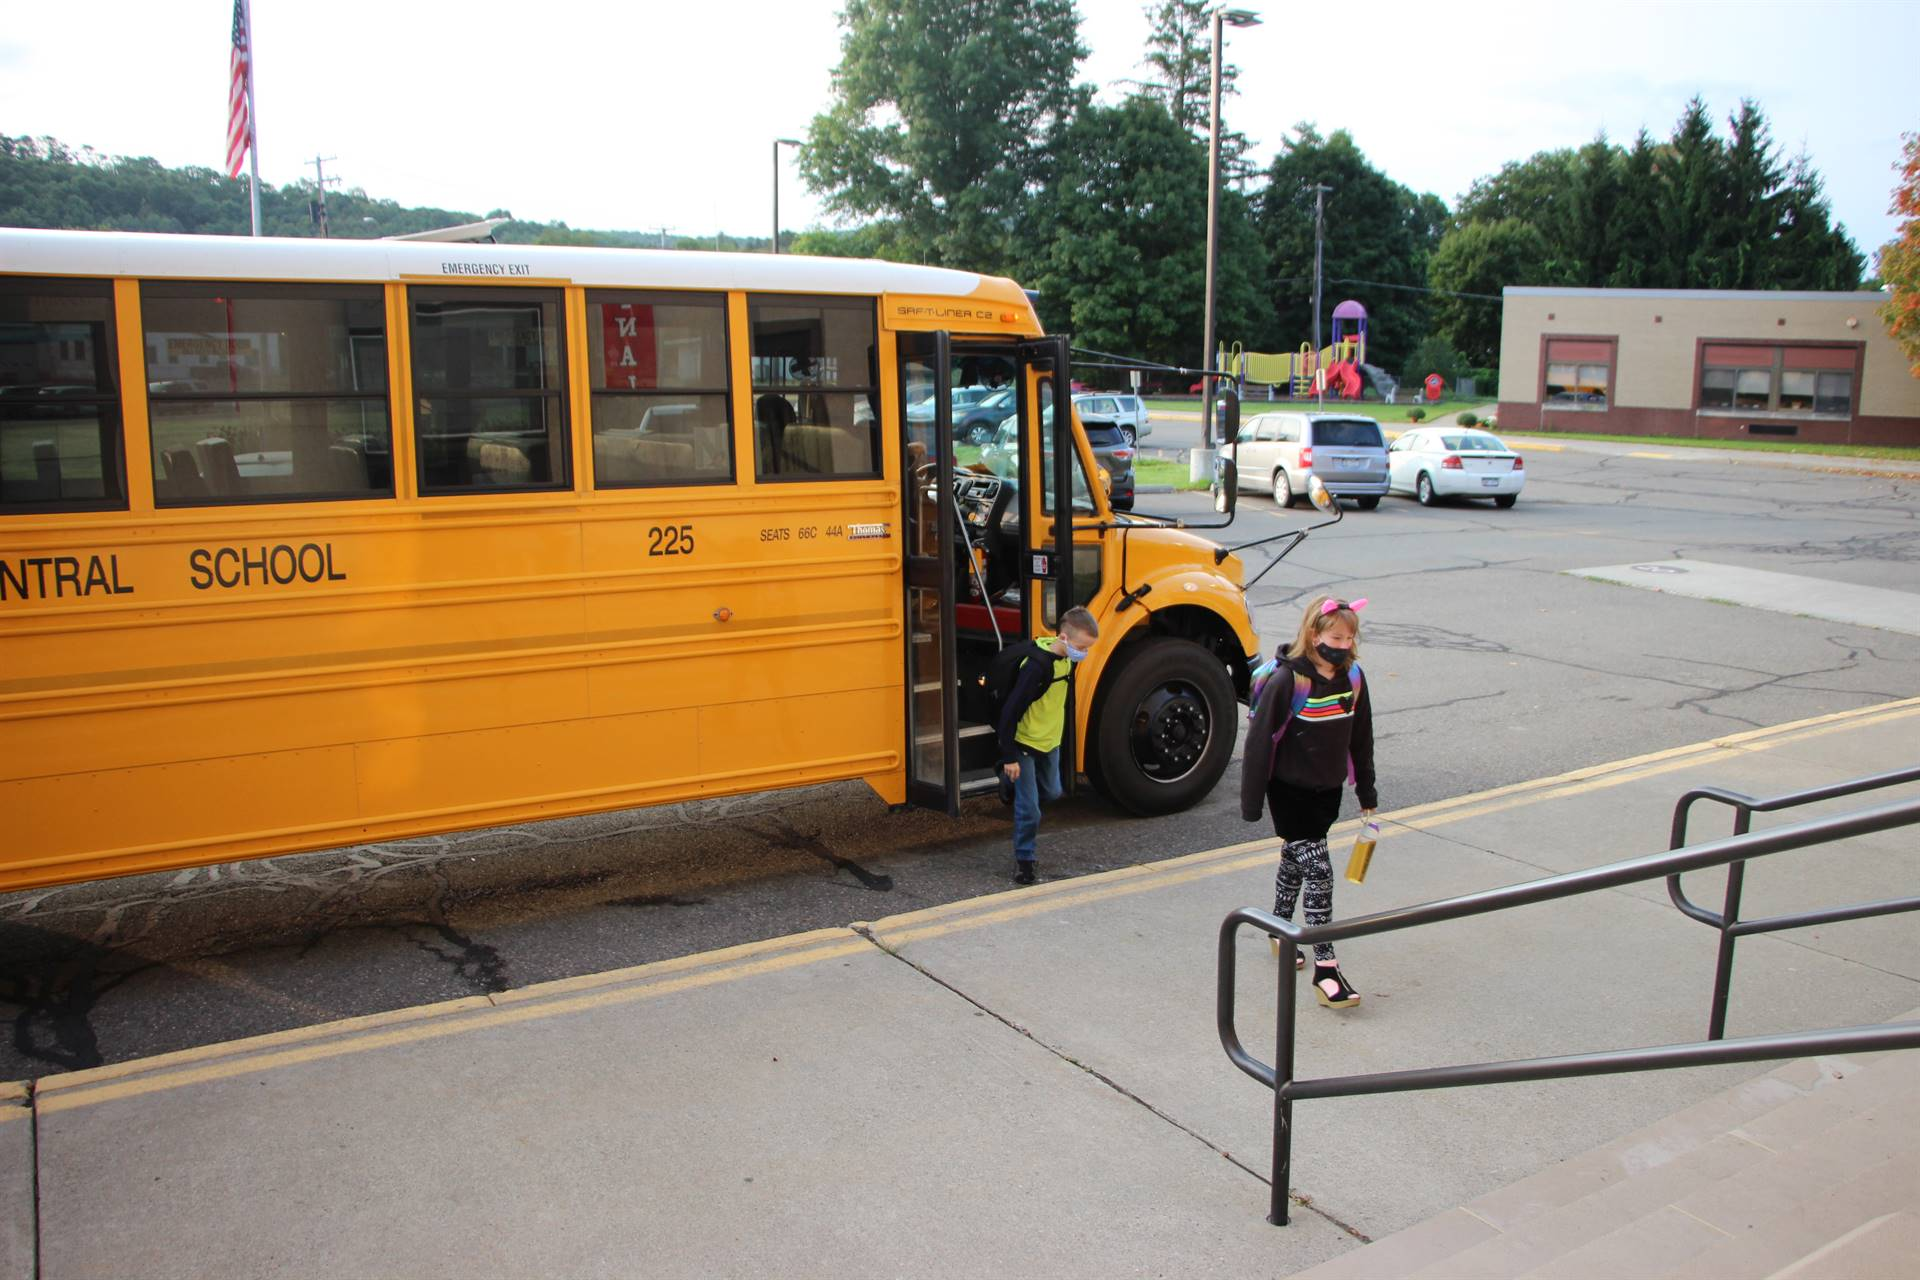 students getting off of school bus